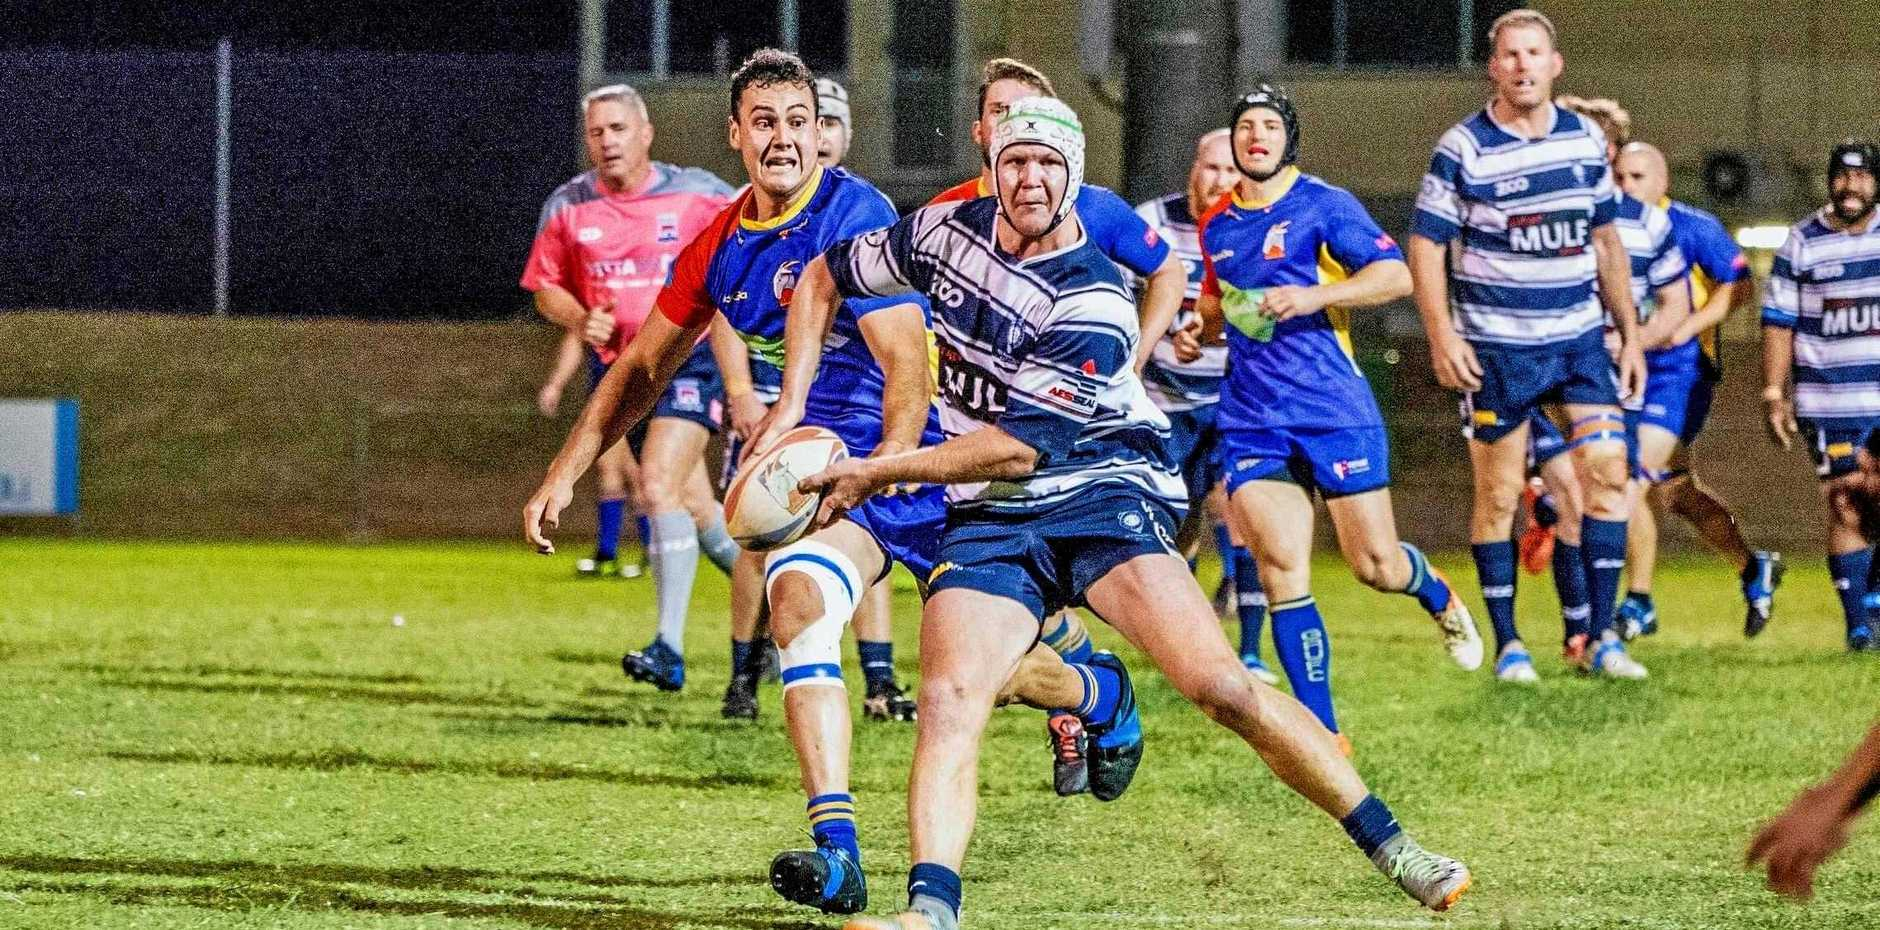 SEASON FIRST: Brothers' Lachlan Campbell goes on the attack against Gladstone Grufs in the Rugby Capricornia semi-final on Saturday.